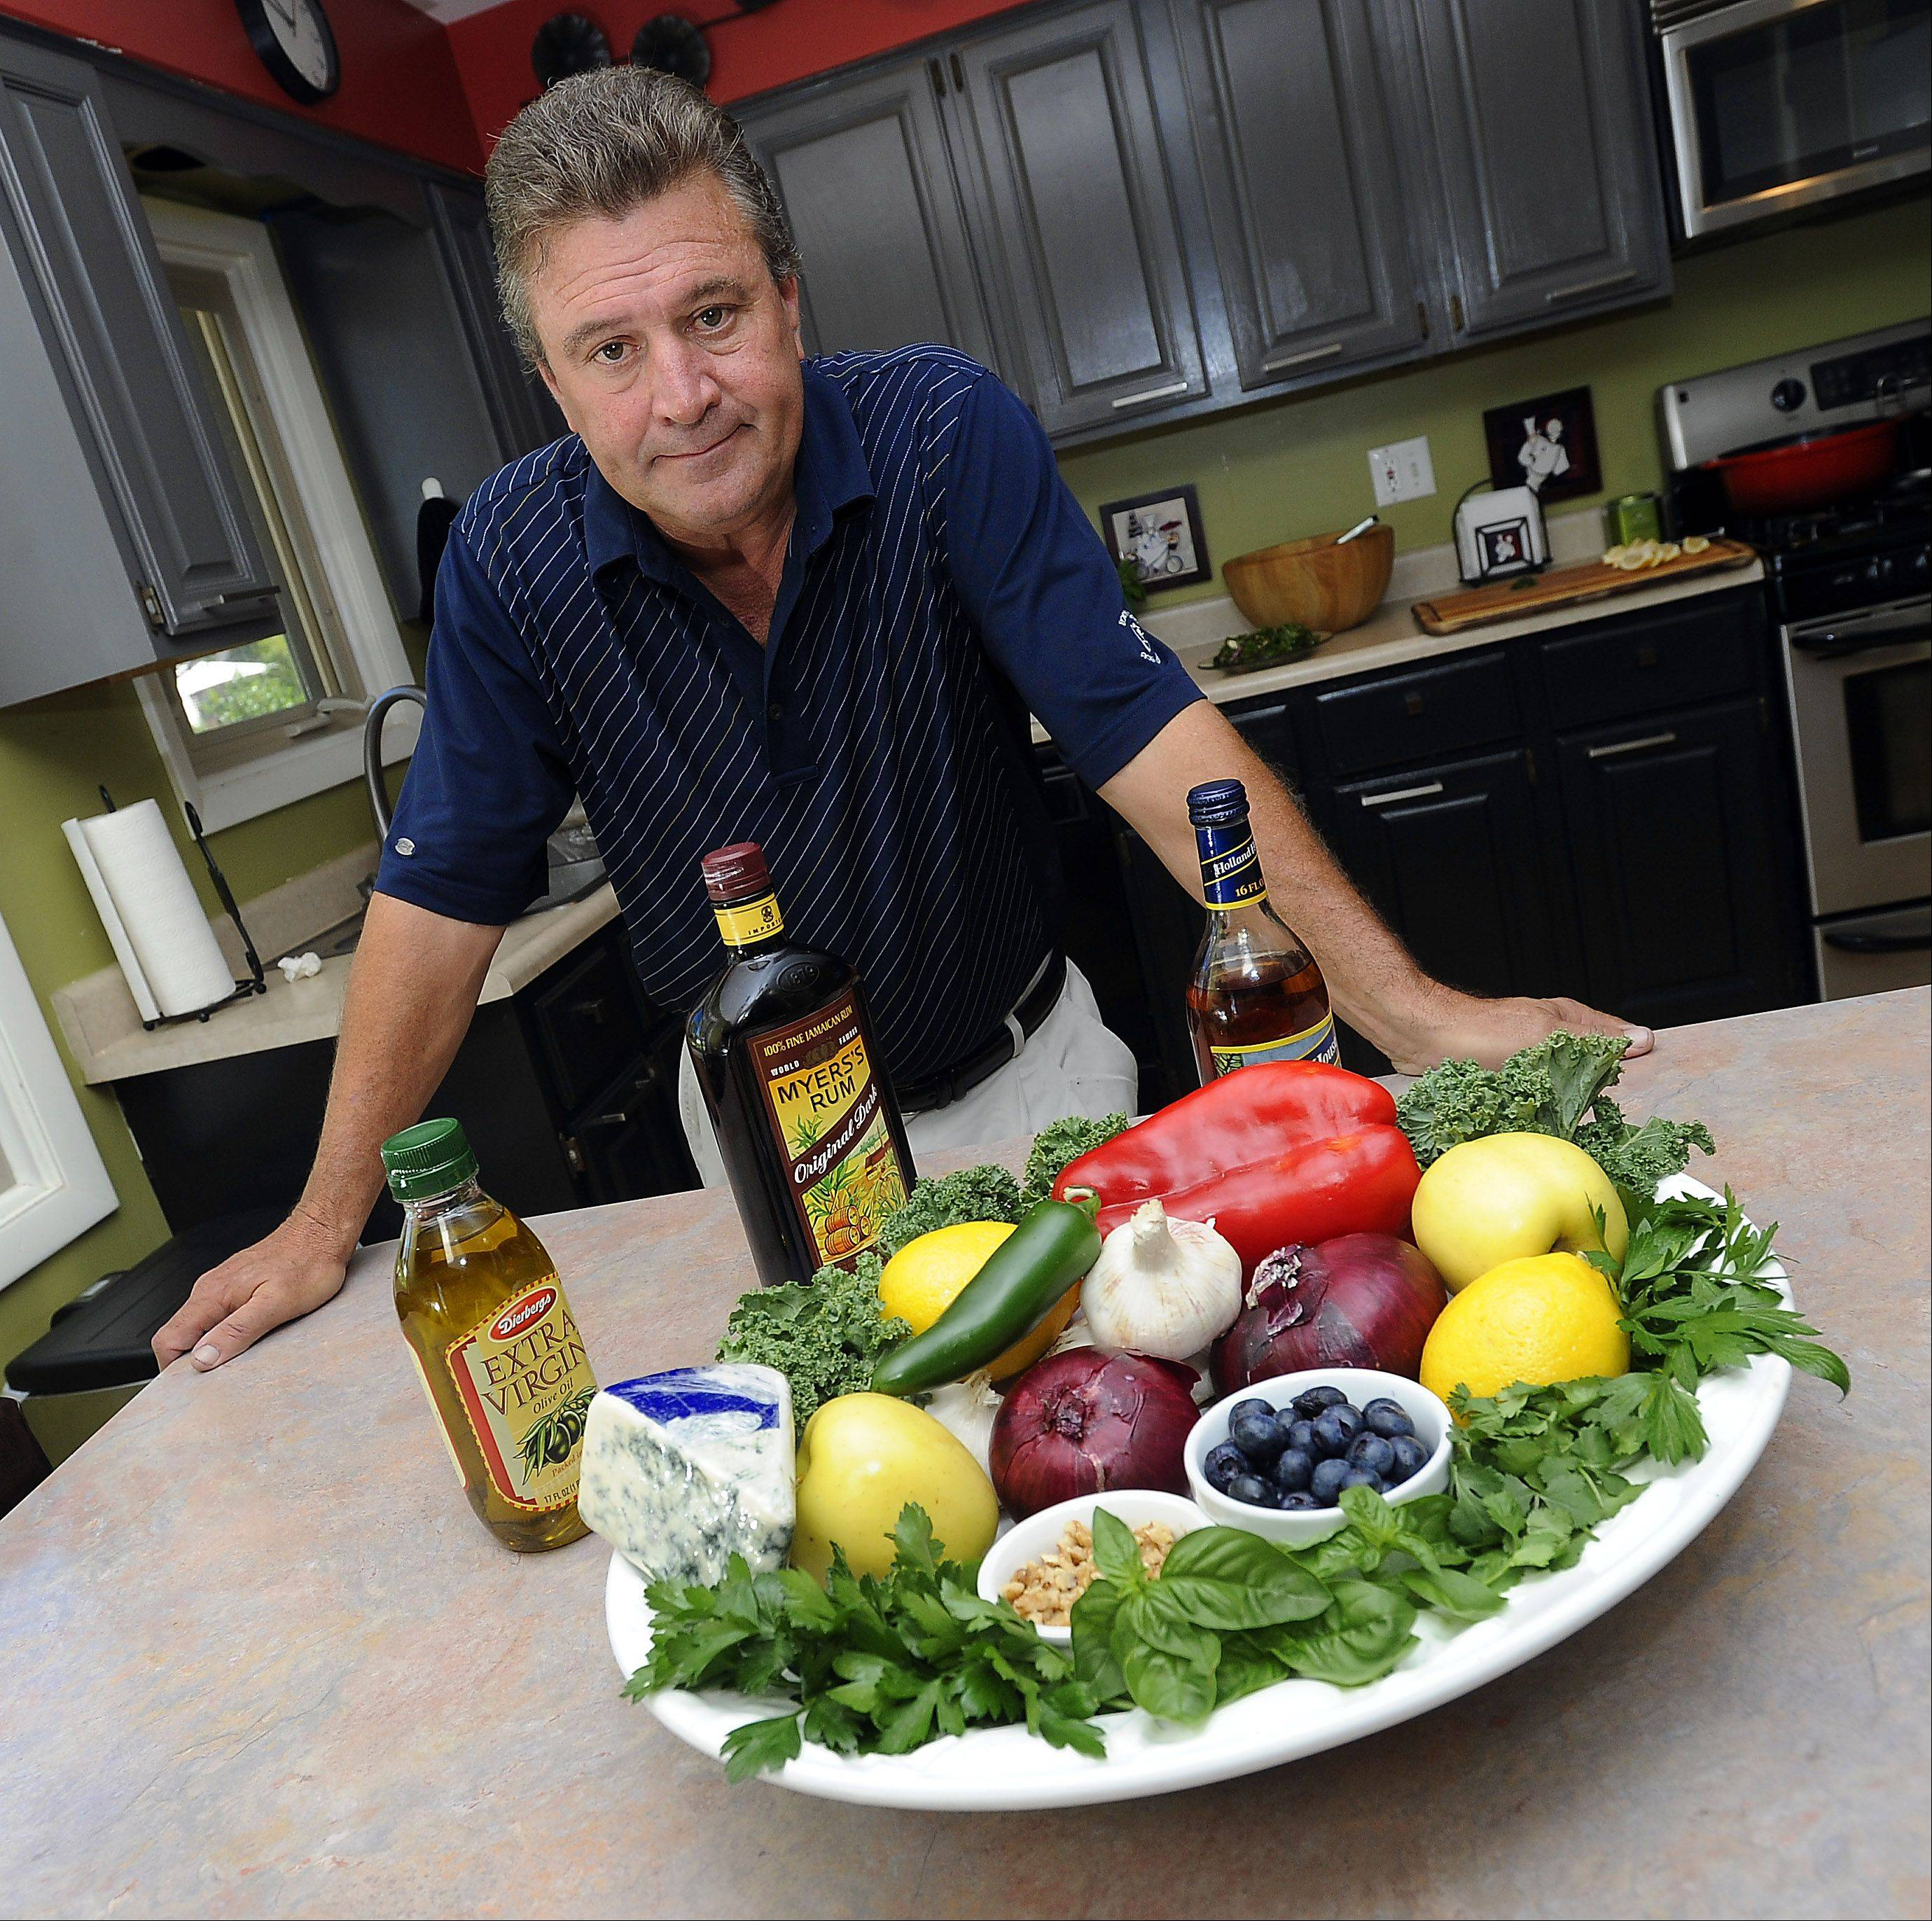 Mark Welsh/mwelsh@dailyherald.comElk Grove Village Ronald Nunes with his favorite ingredients, onions, peppers, blueberries, preparing to cook his famous pork chops.